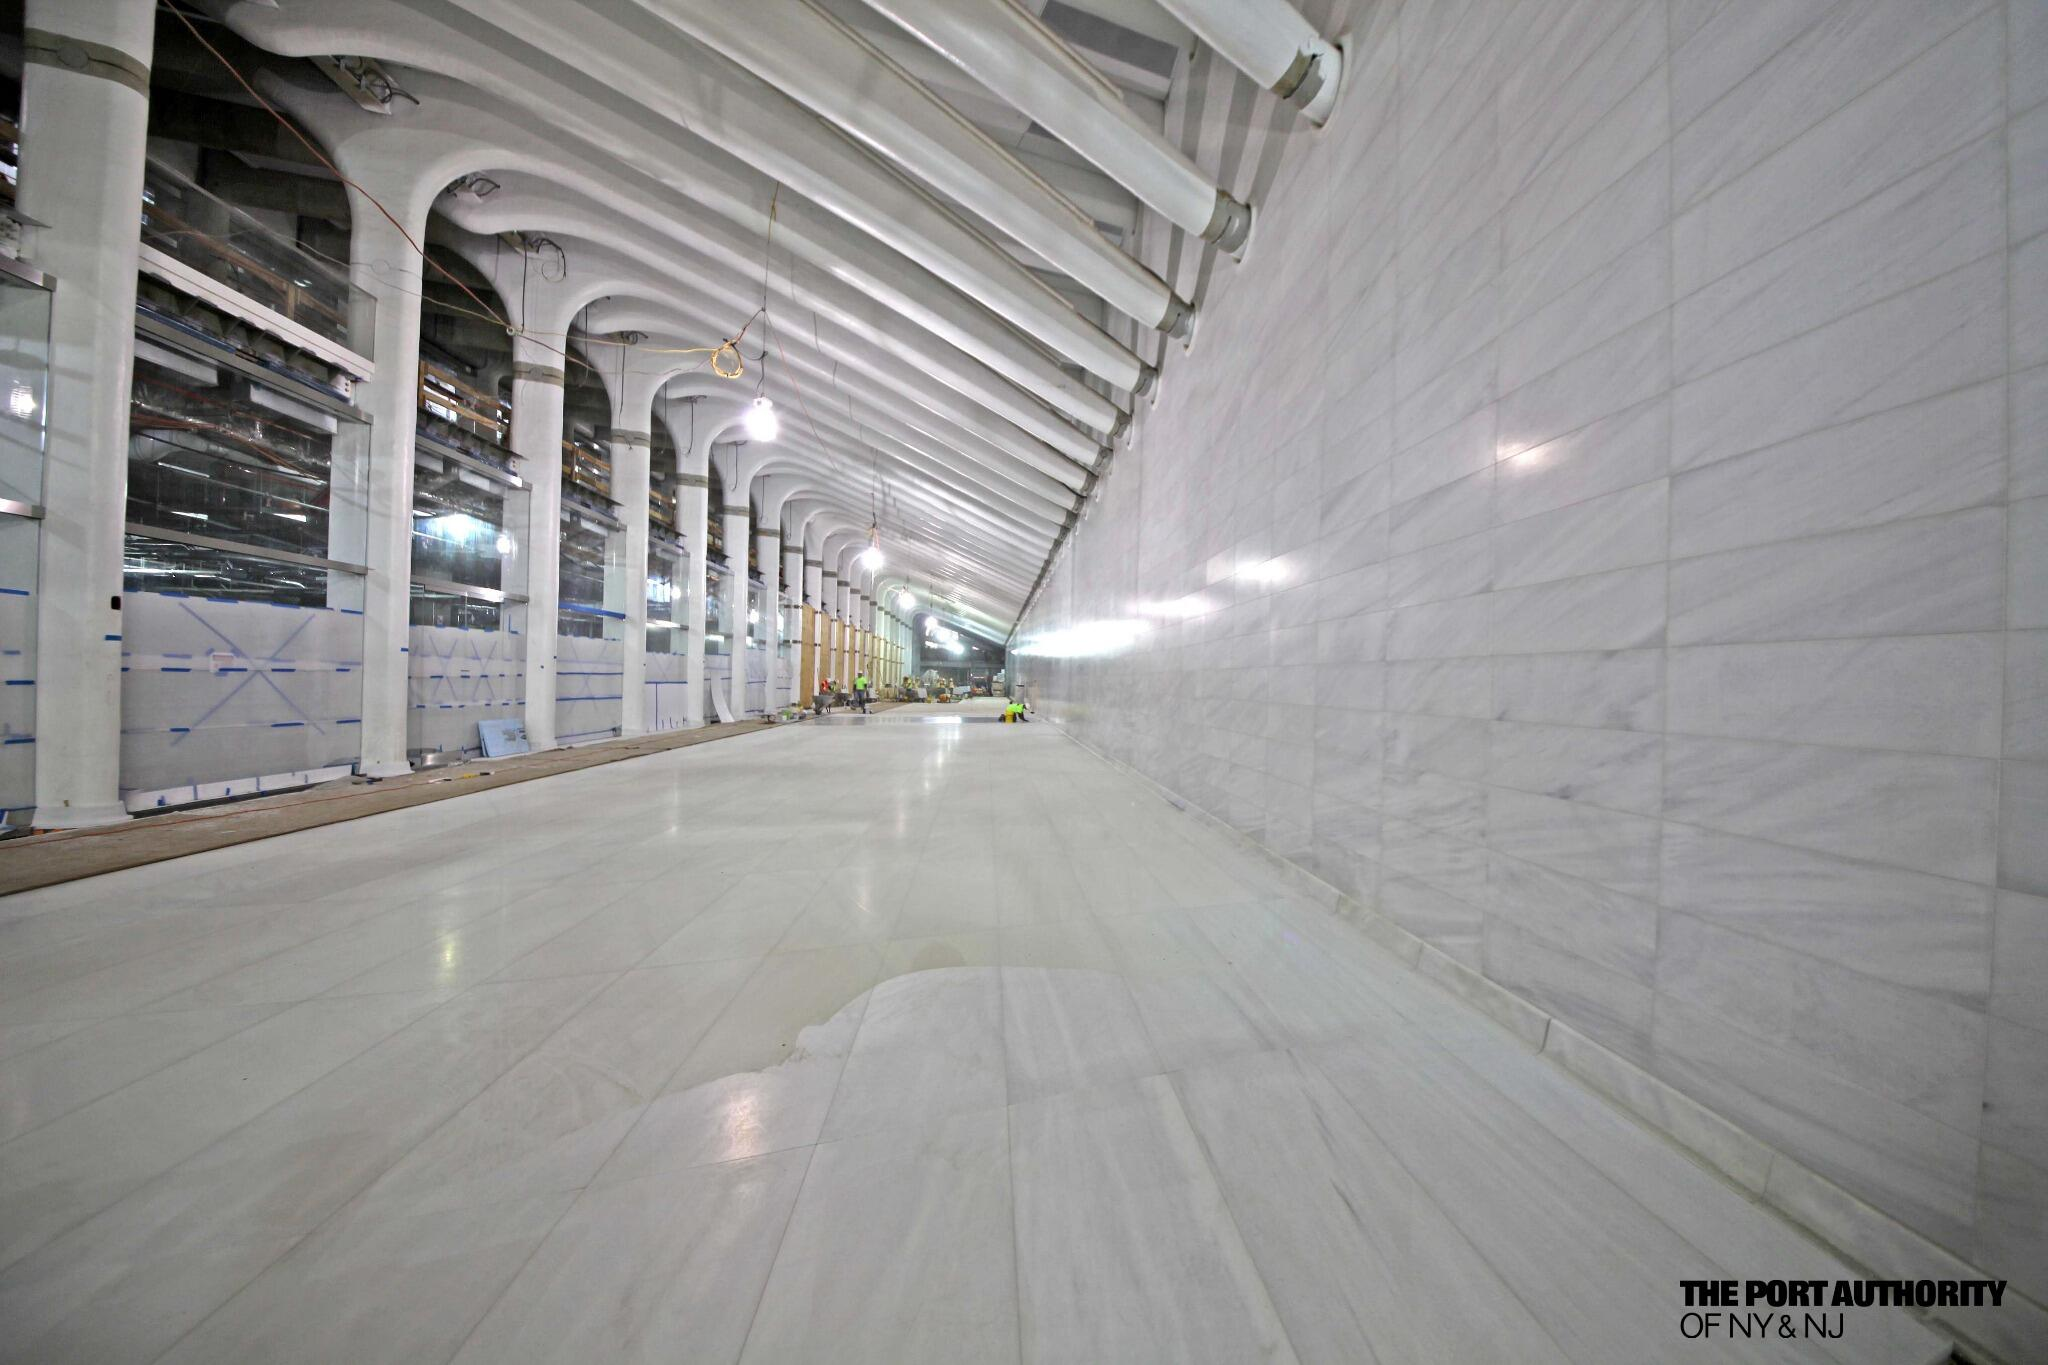 Photo A Glimpse Inside A Marble Lined Subway Station